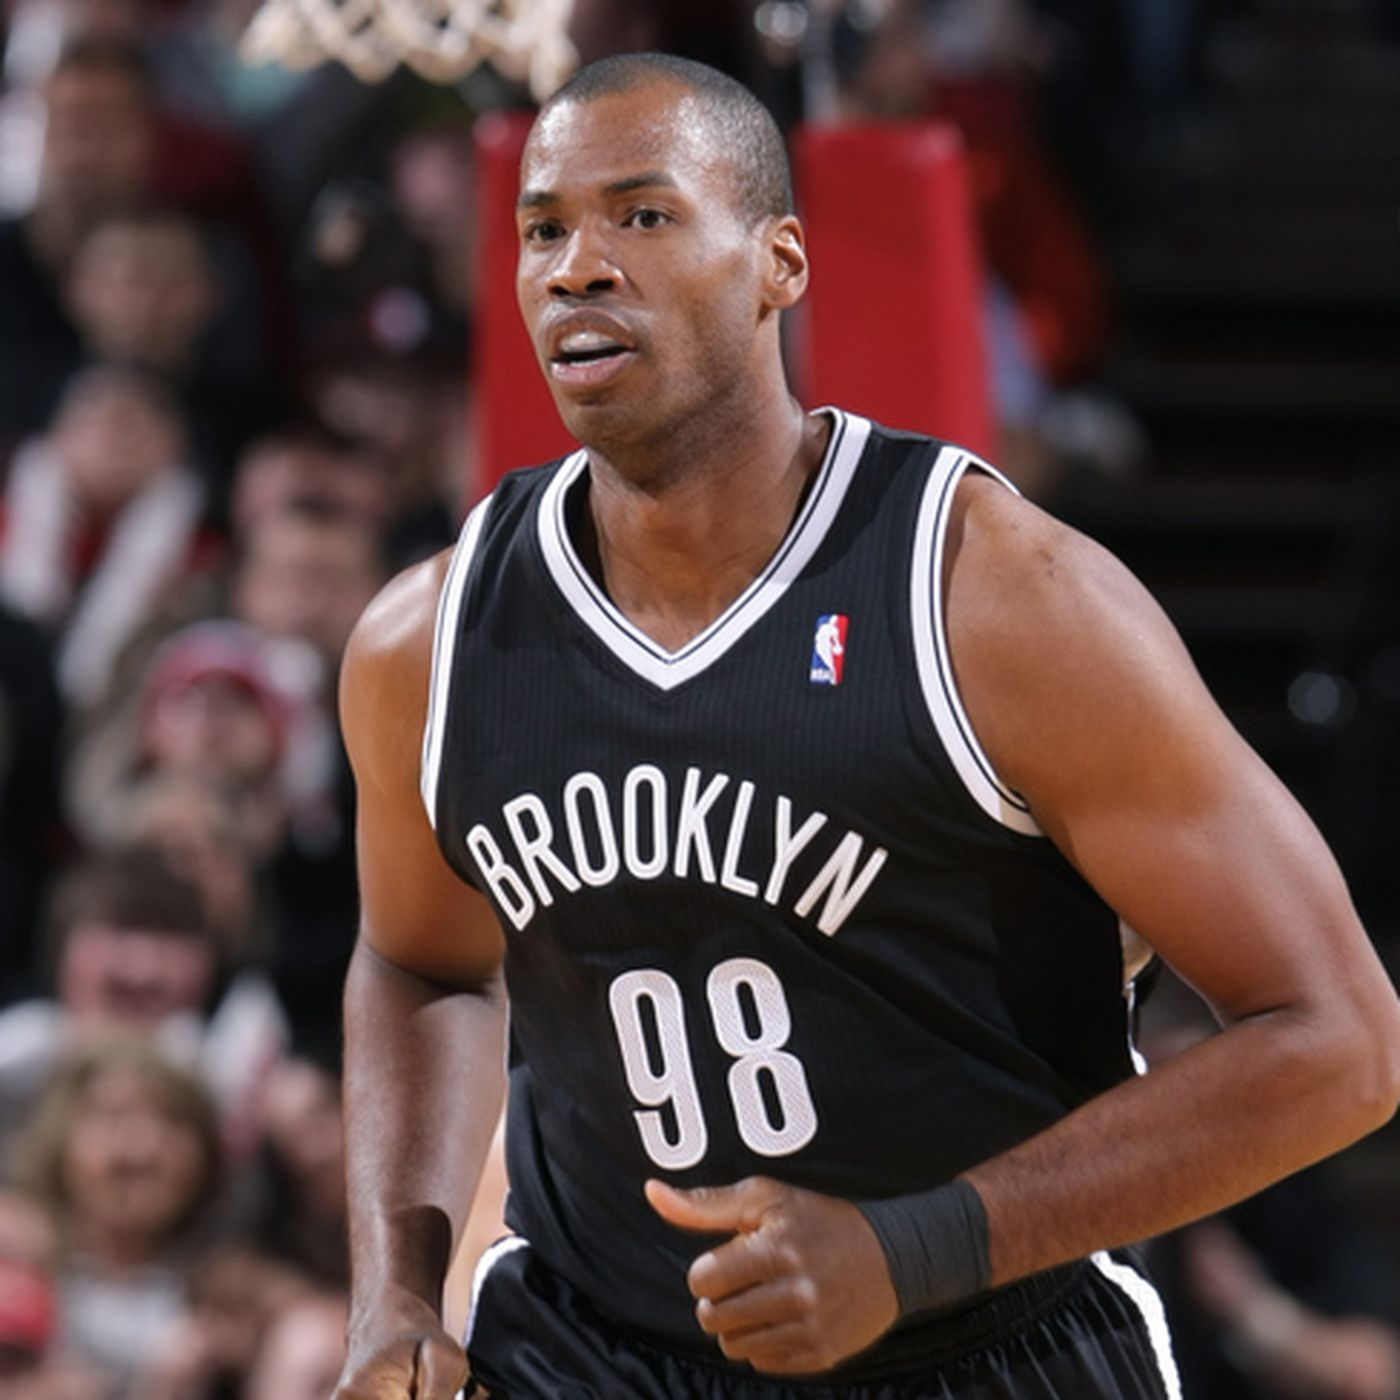 d9c320bd364 Jason Collins wears #98 for Nets for first time, a tribute to Matthew  Shepard - Outsports